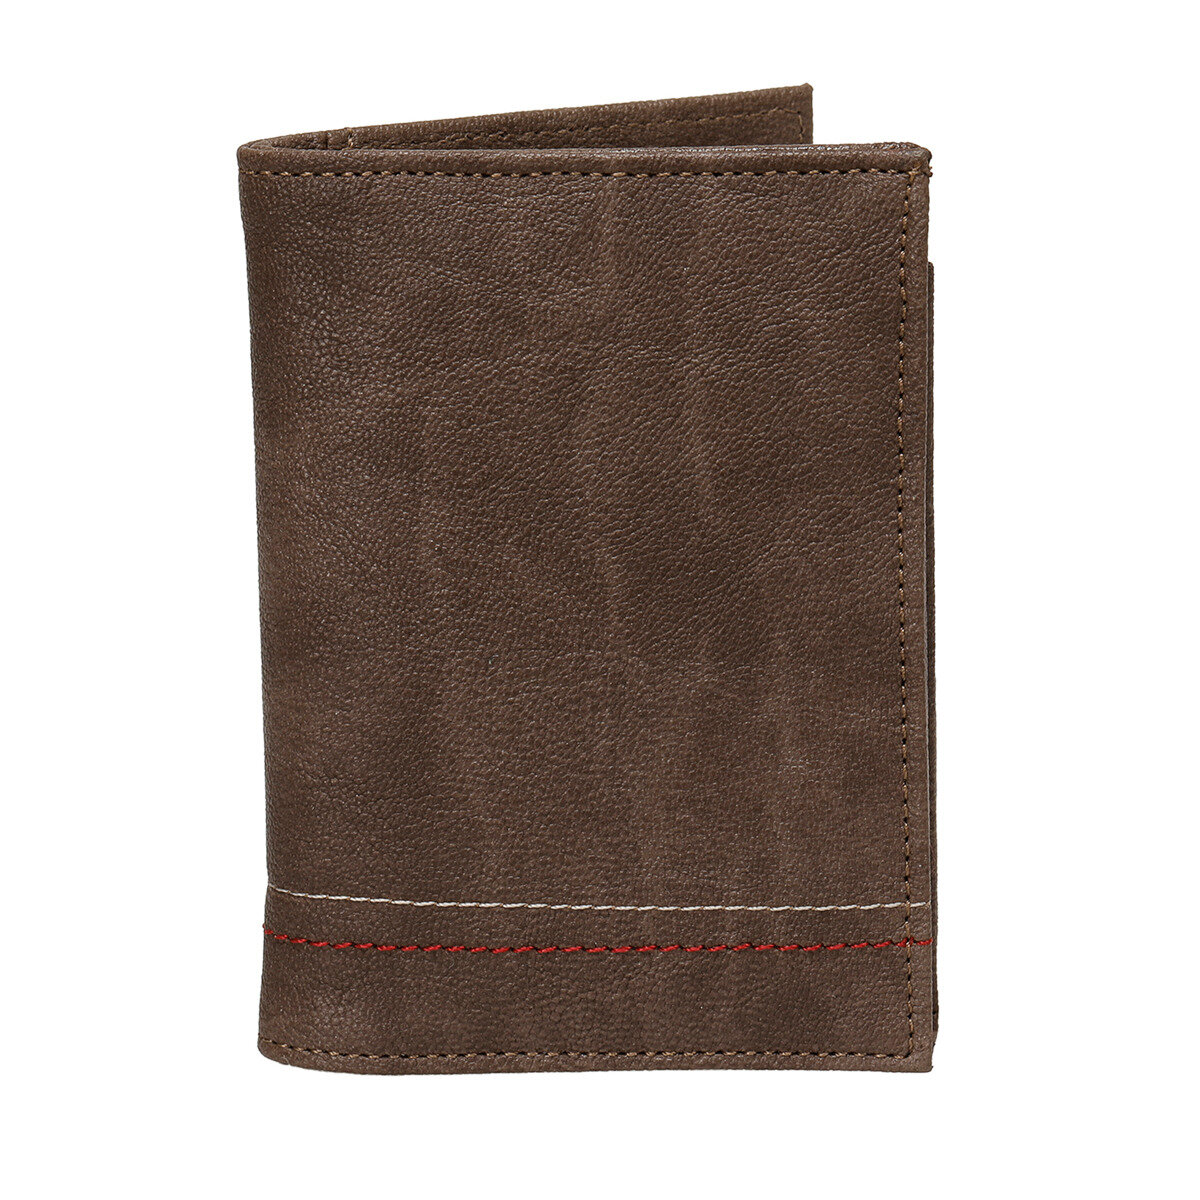 FLO PB SADDLE-STITCH CZDN Brown Men 'S Wallet Oxide